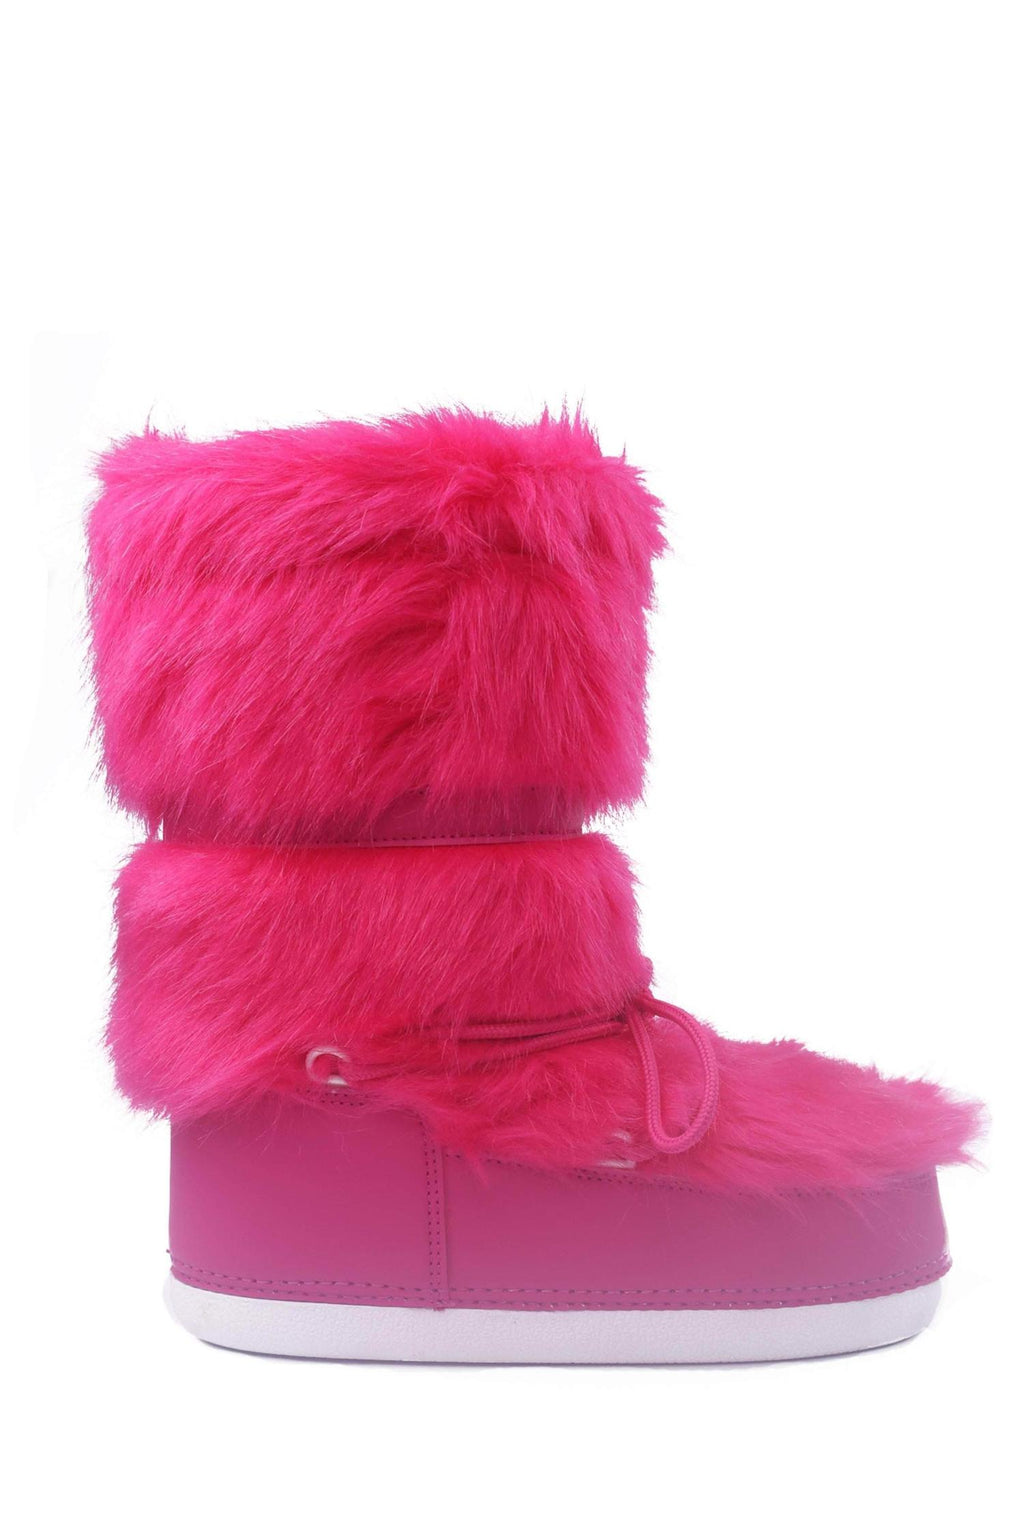 Cape Robbin Lava Pink Lace up Fur Moon Boots